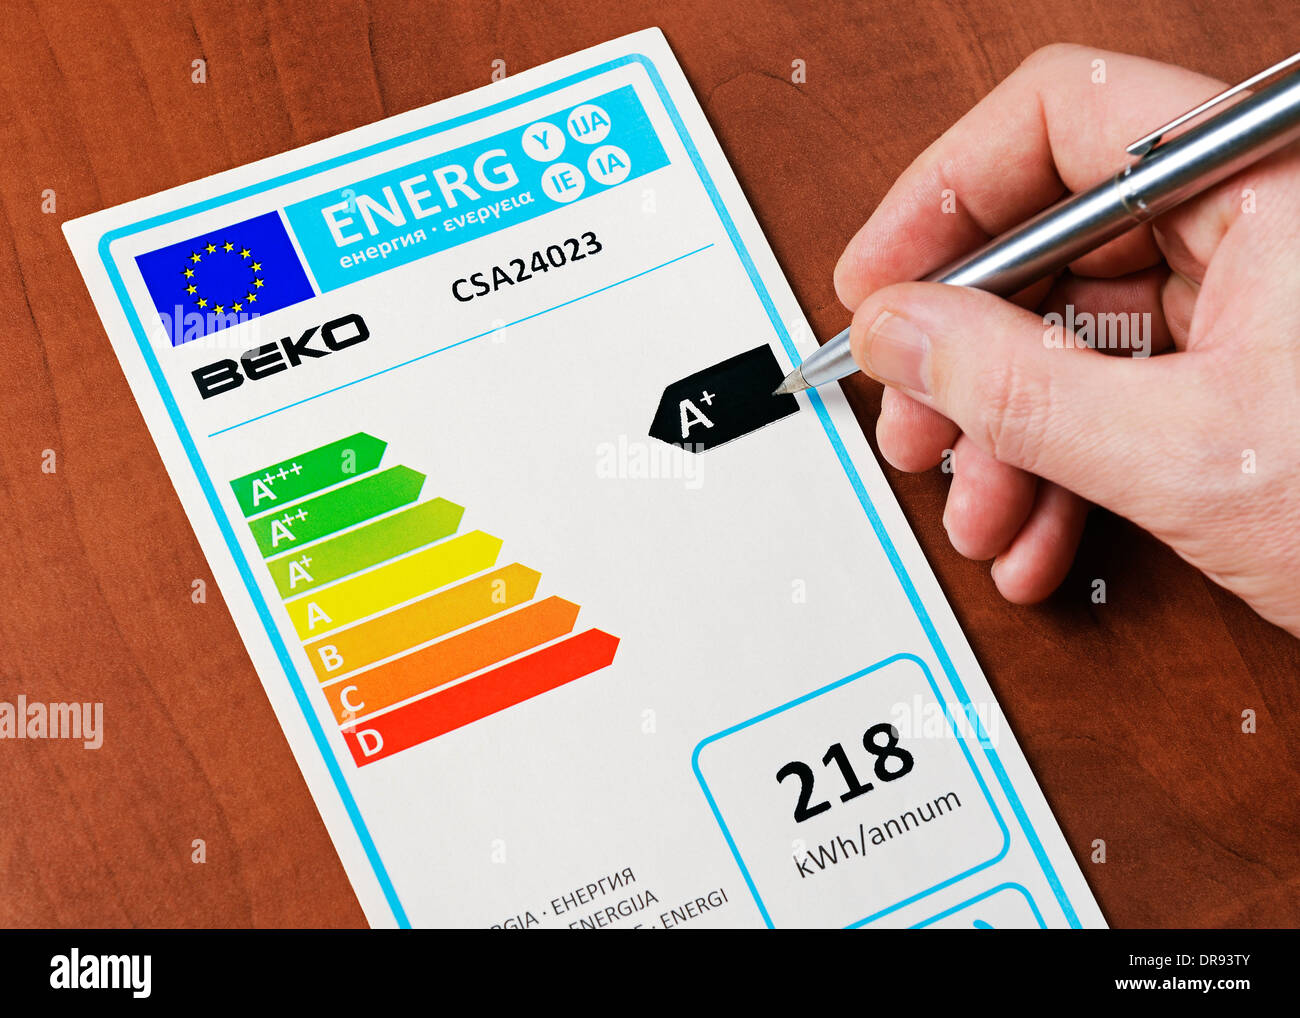 European Union Energy Consumption Label. - Stock Image